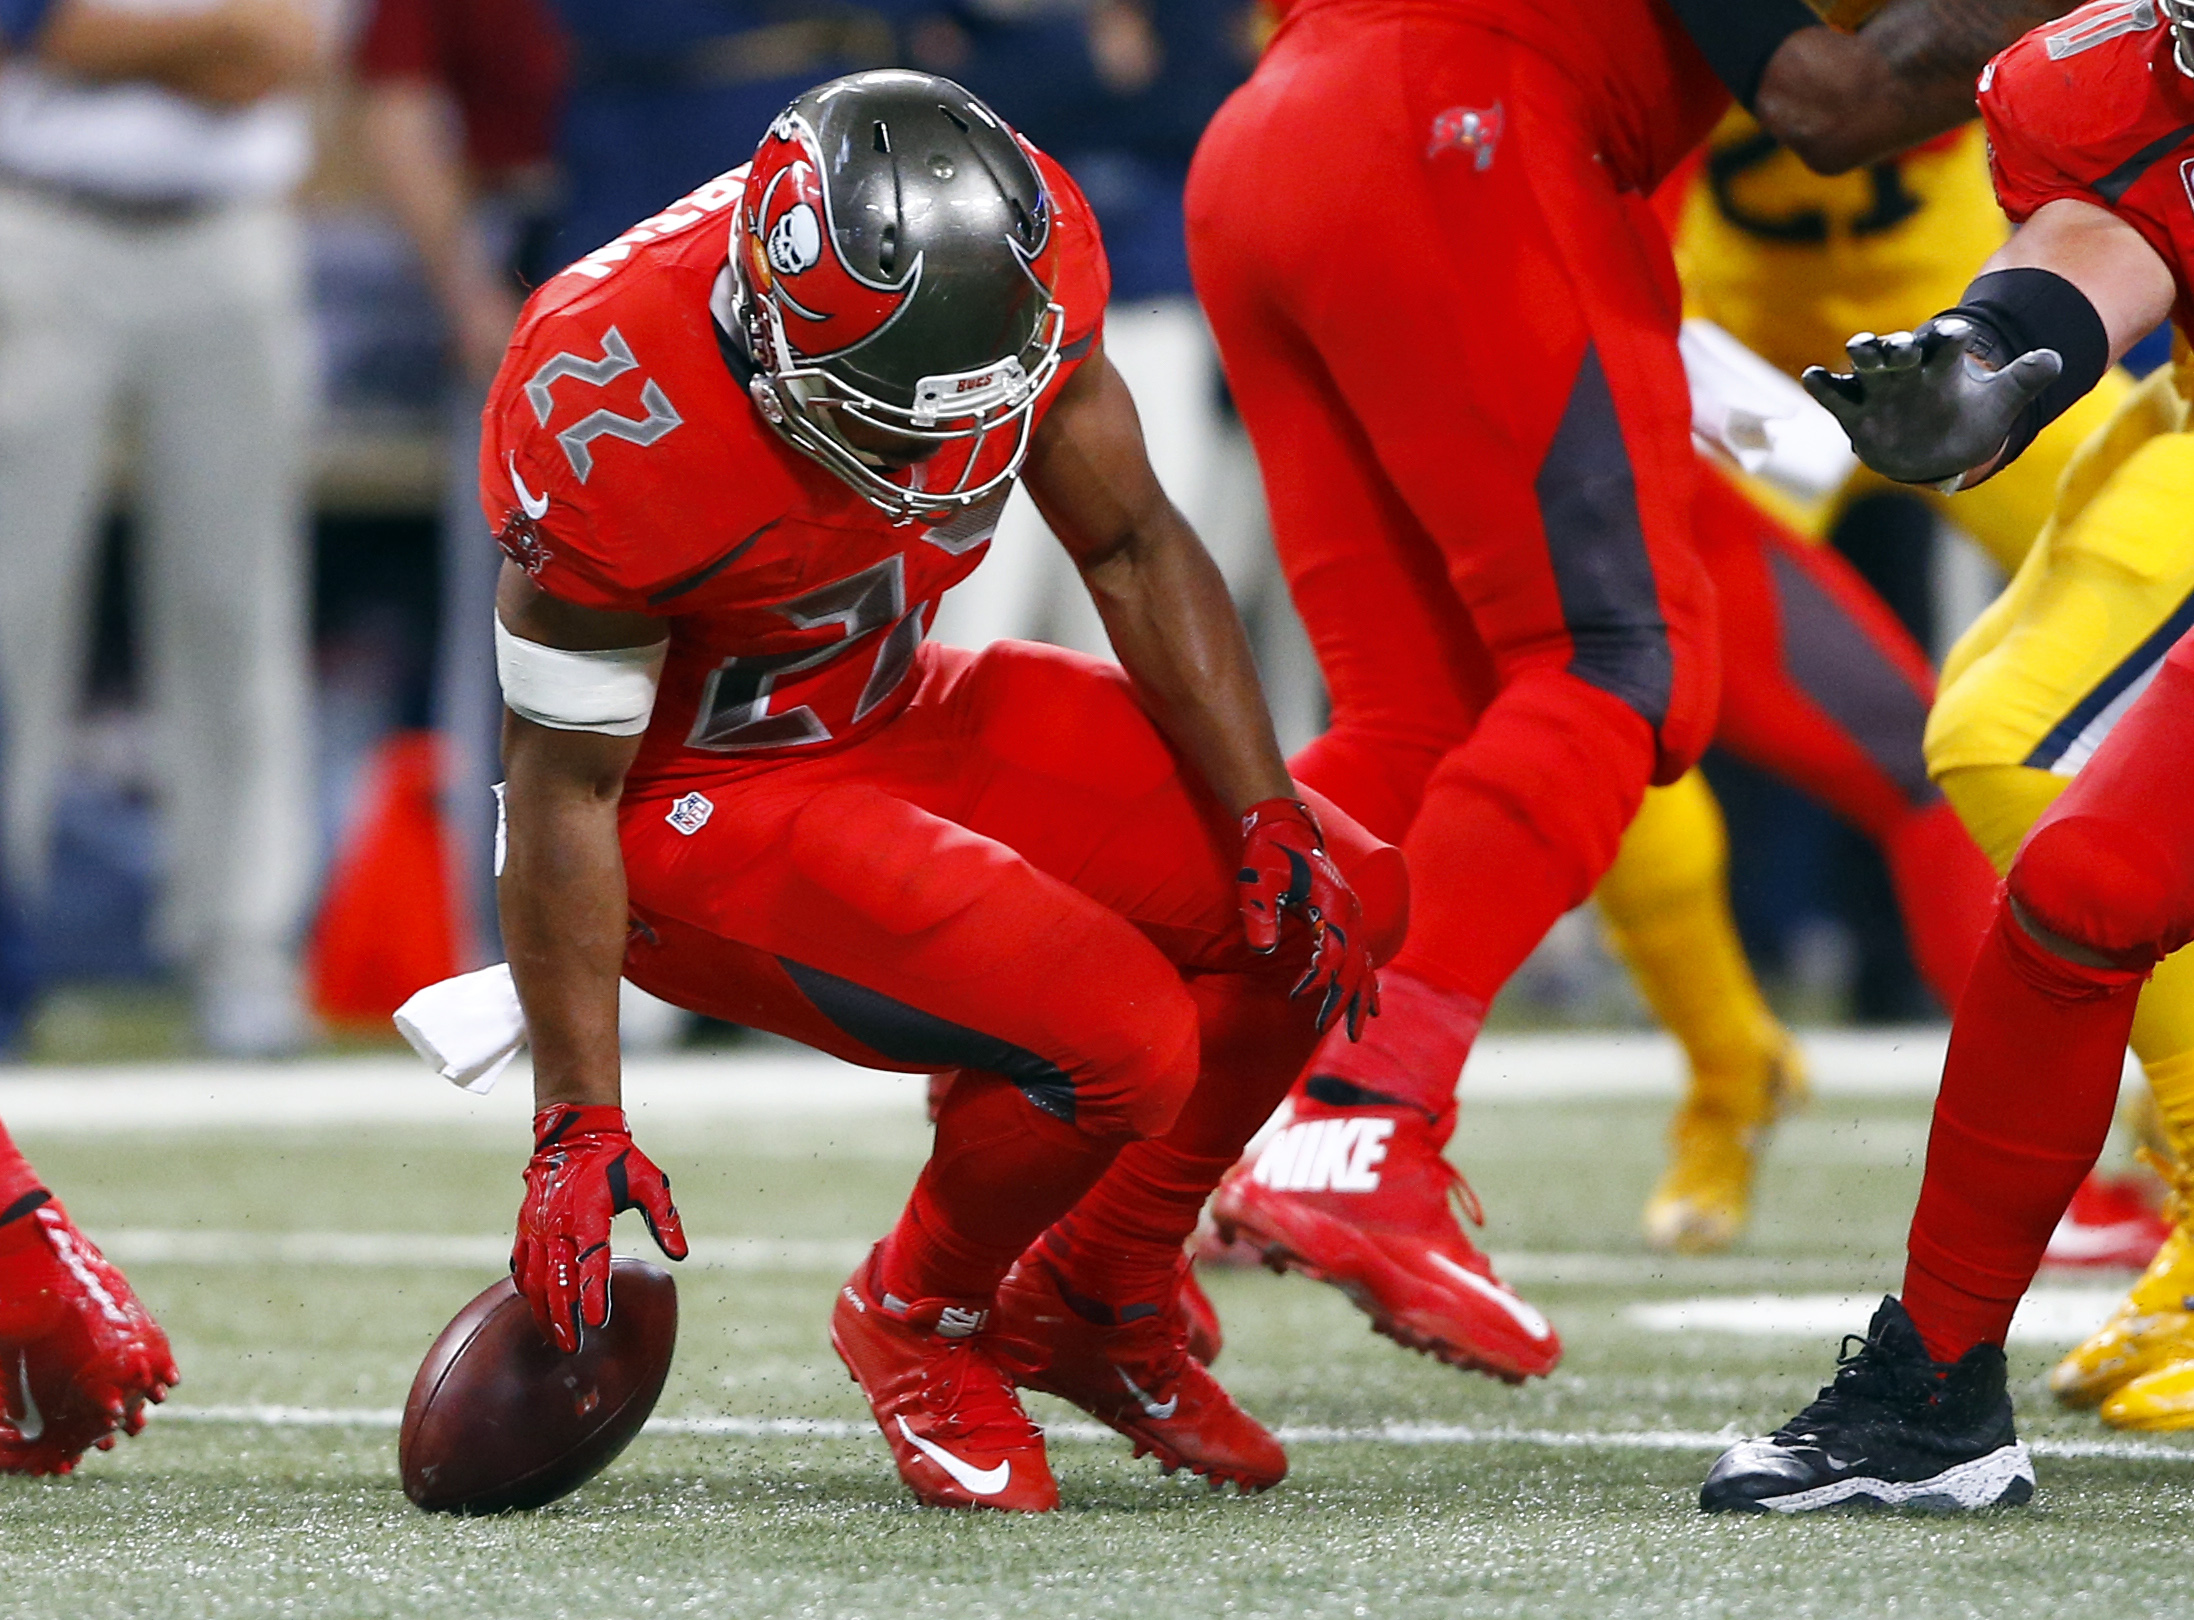 Tampa Bay Buccaneers running back Doug Martin fumbles the ball during the third quarter of an NFL football game against the St. Louis Rams on Thursday, Dec. 17, 2015, in St. Louis. The Rams' Doug Worthington recovered the fumble. (AP Photo/Billy Hurst)